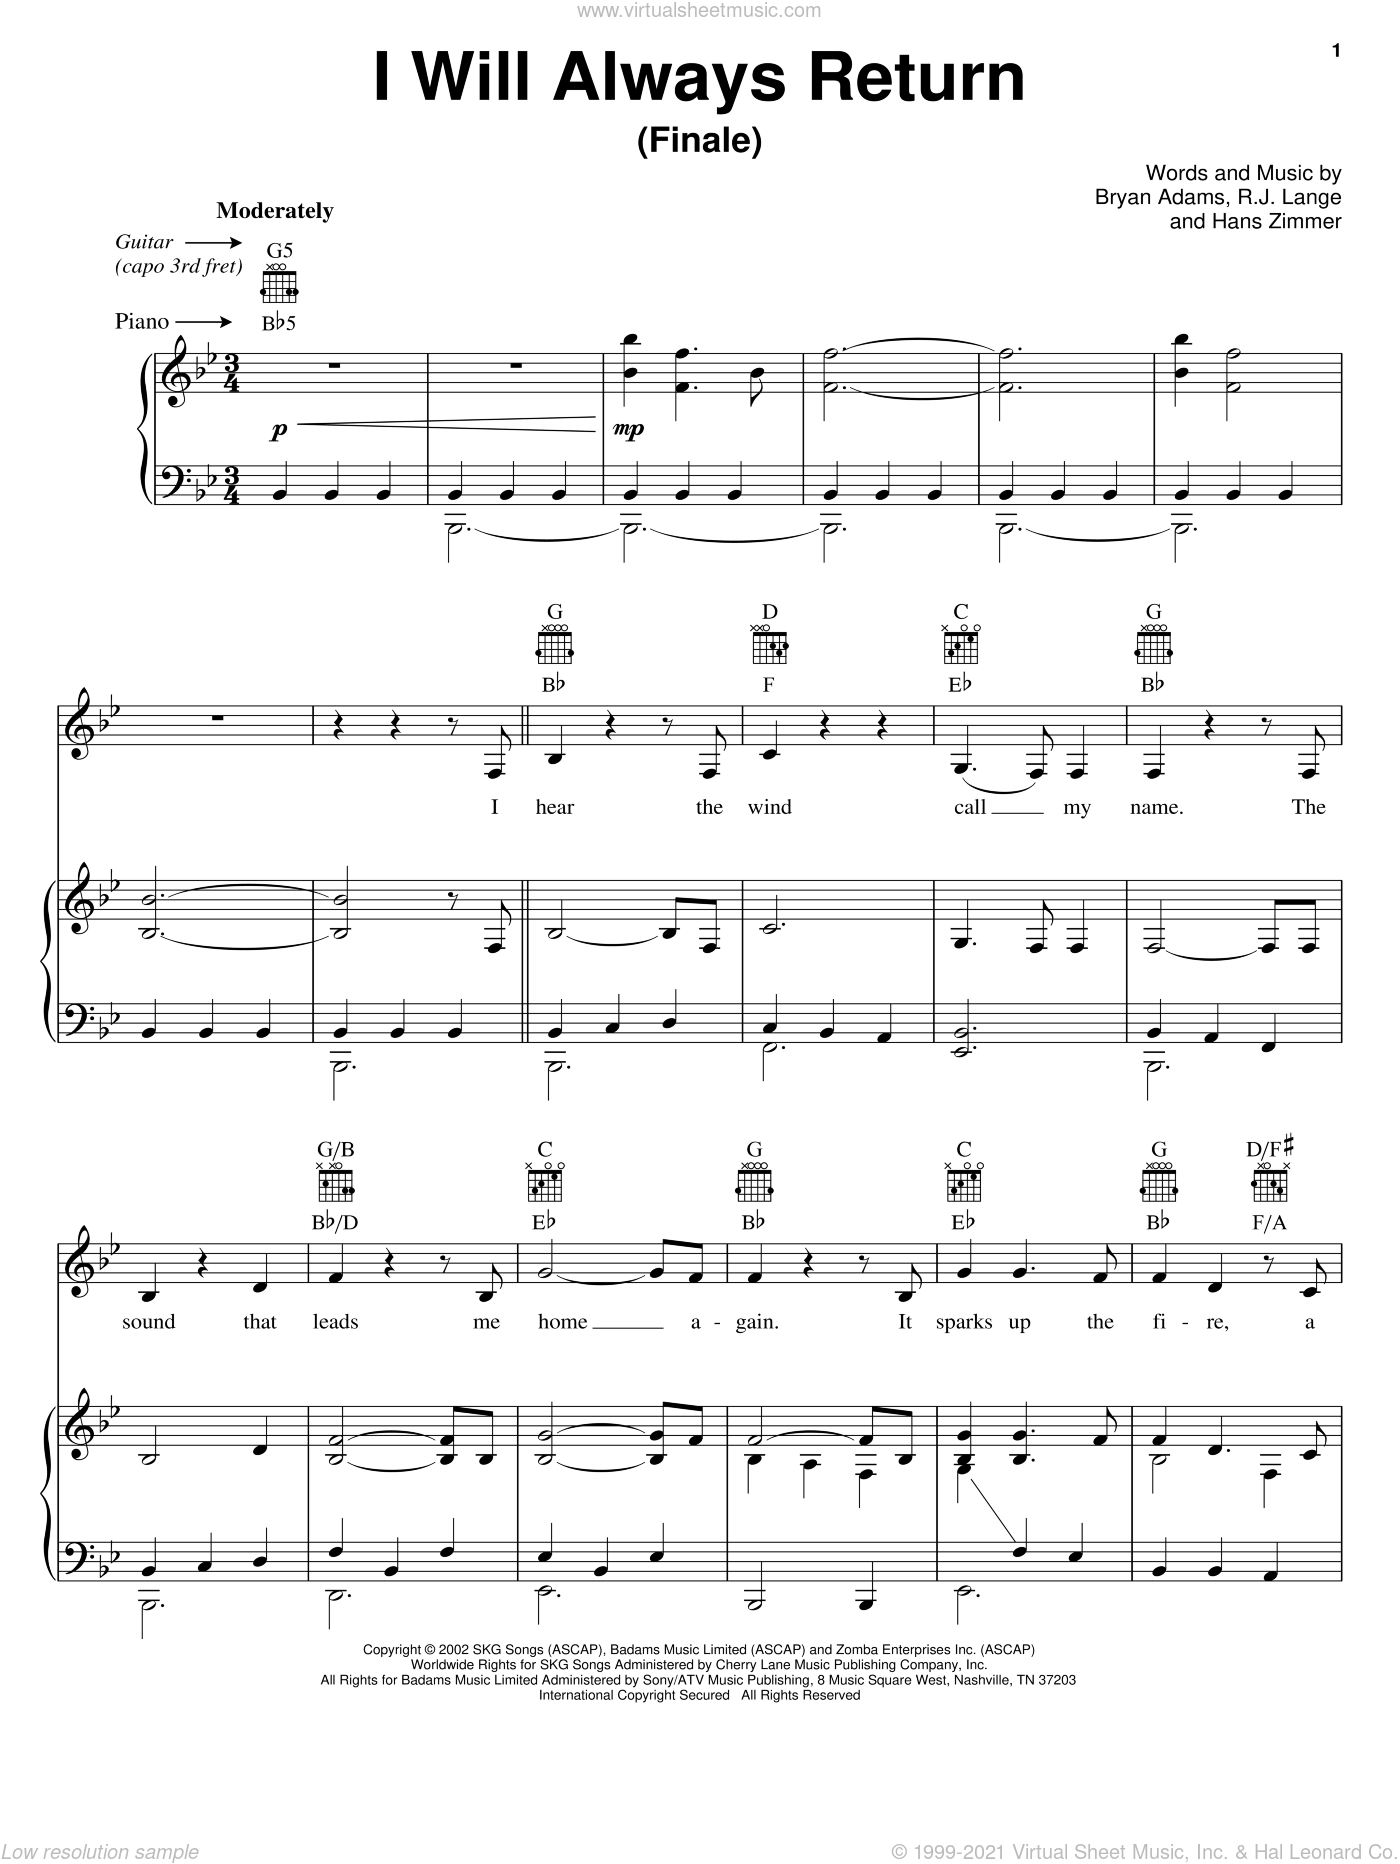 I Will Always Return (Finale) sheet music for voice, piano or guitar by Robert John Lange